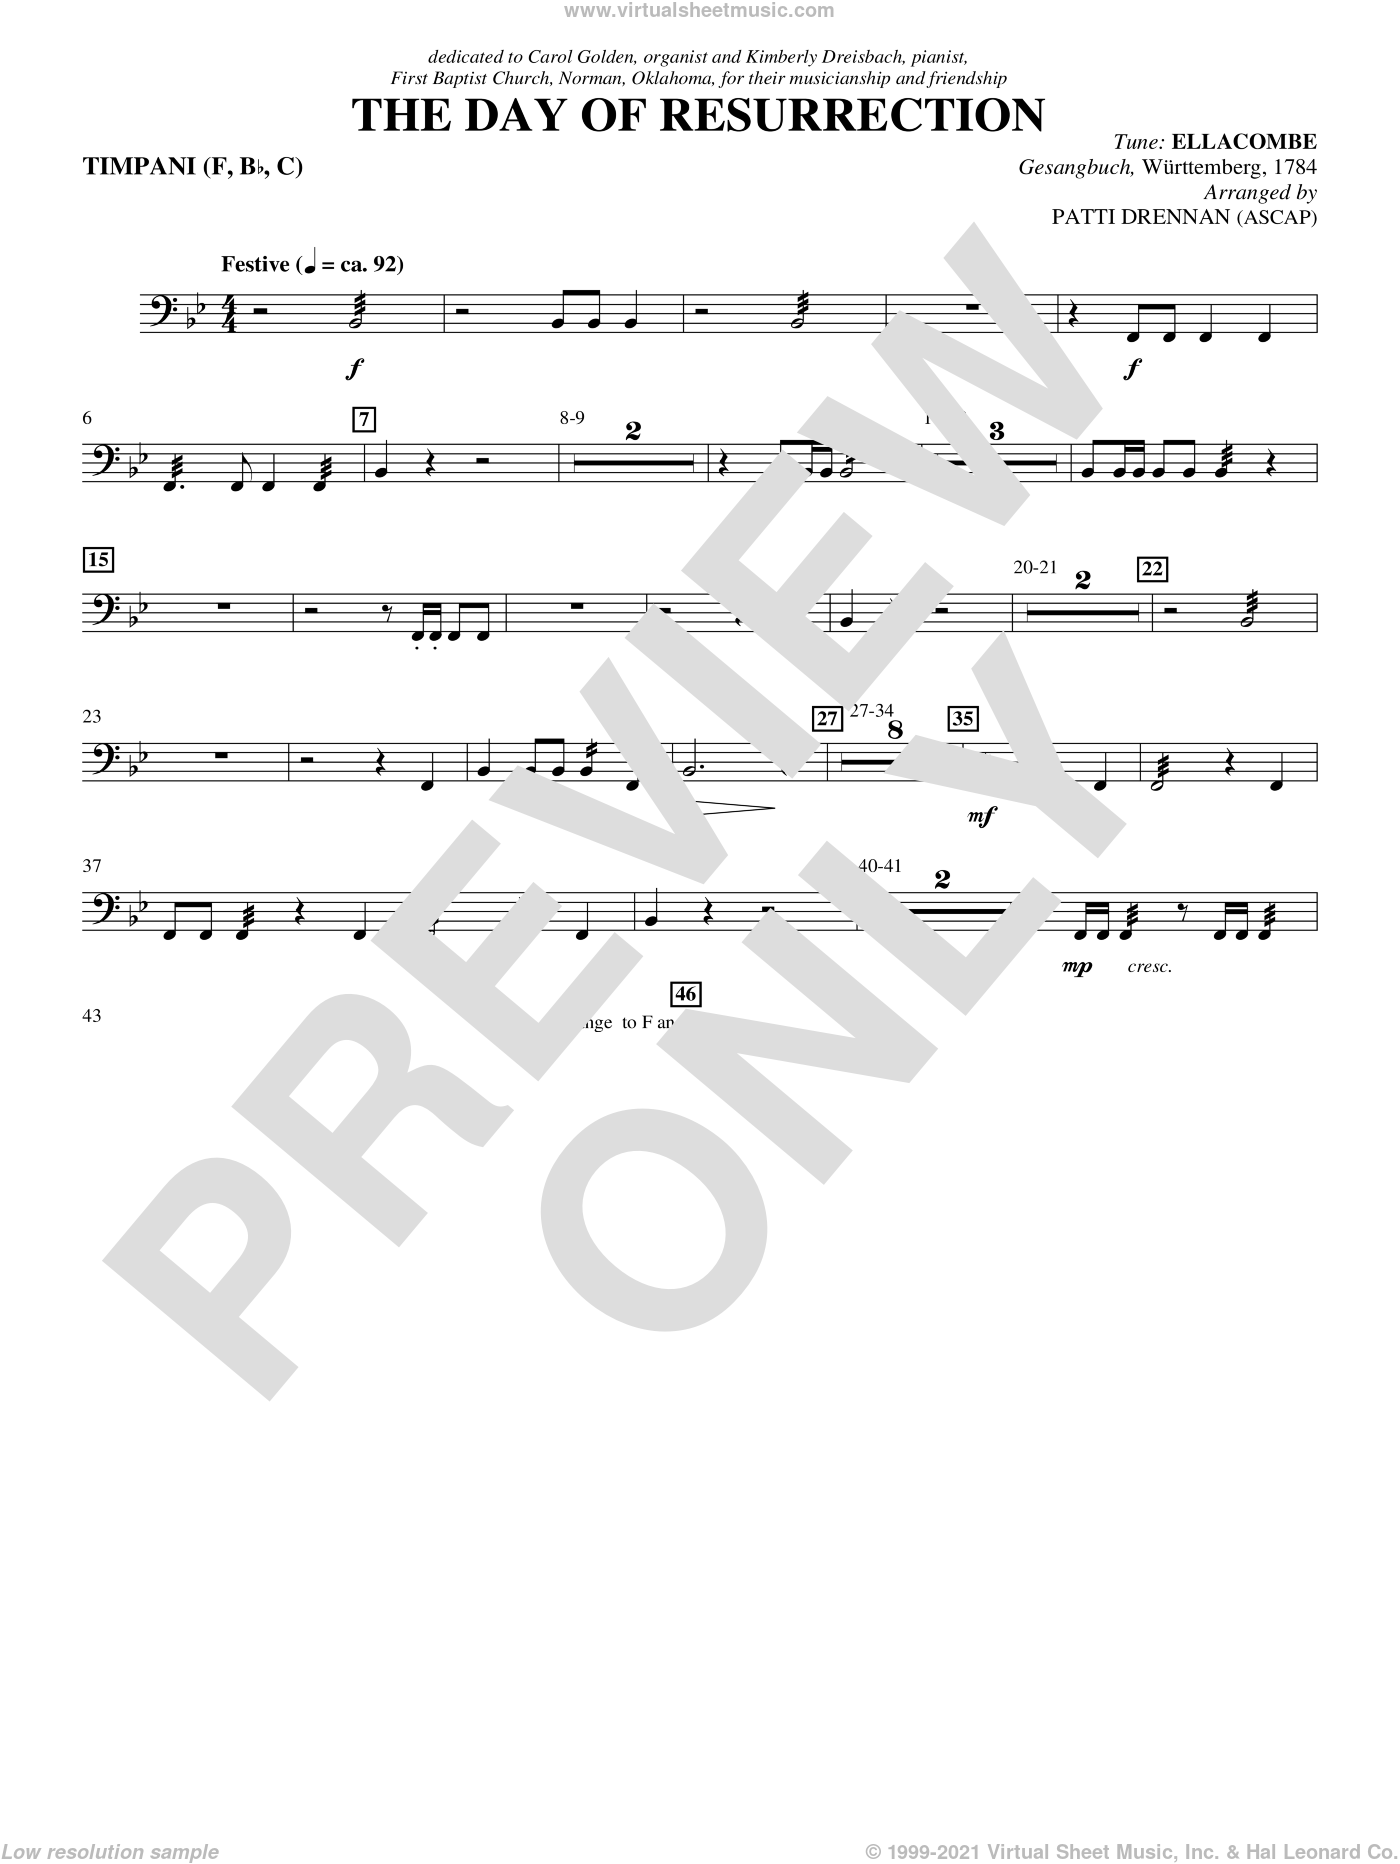 The Day Of Resurrection sheet music for orchestra/band (timpani) by Patti Drennan